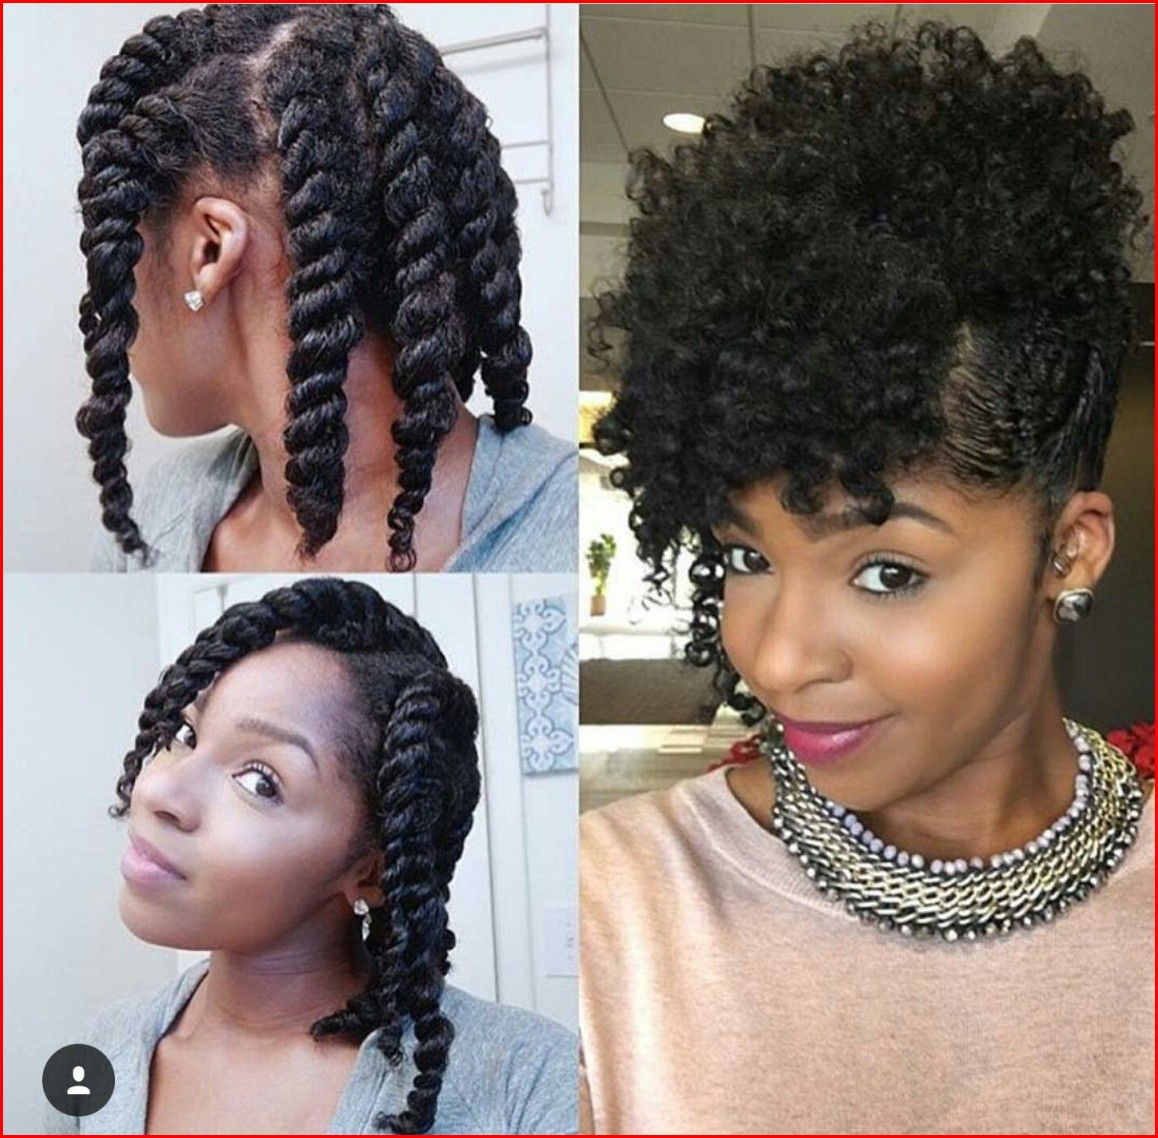 Hairstyles Braided Treatments for African American Natural Hairstyles